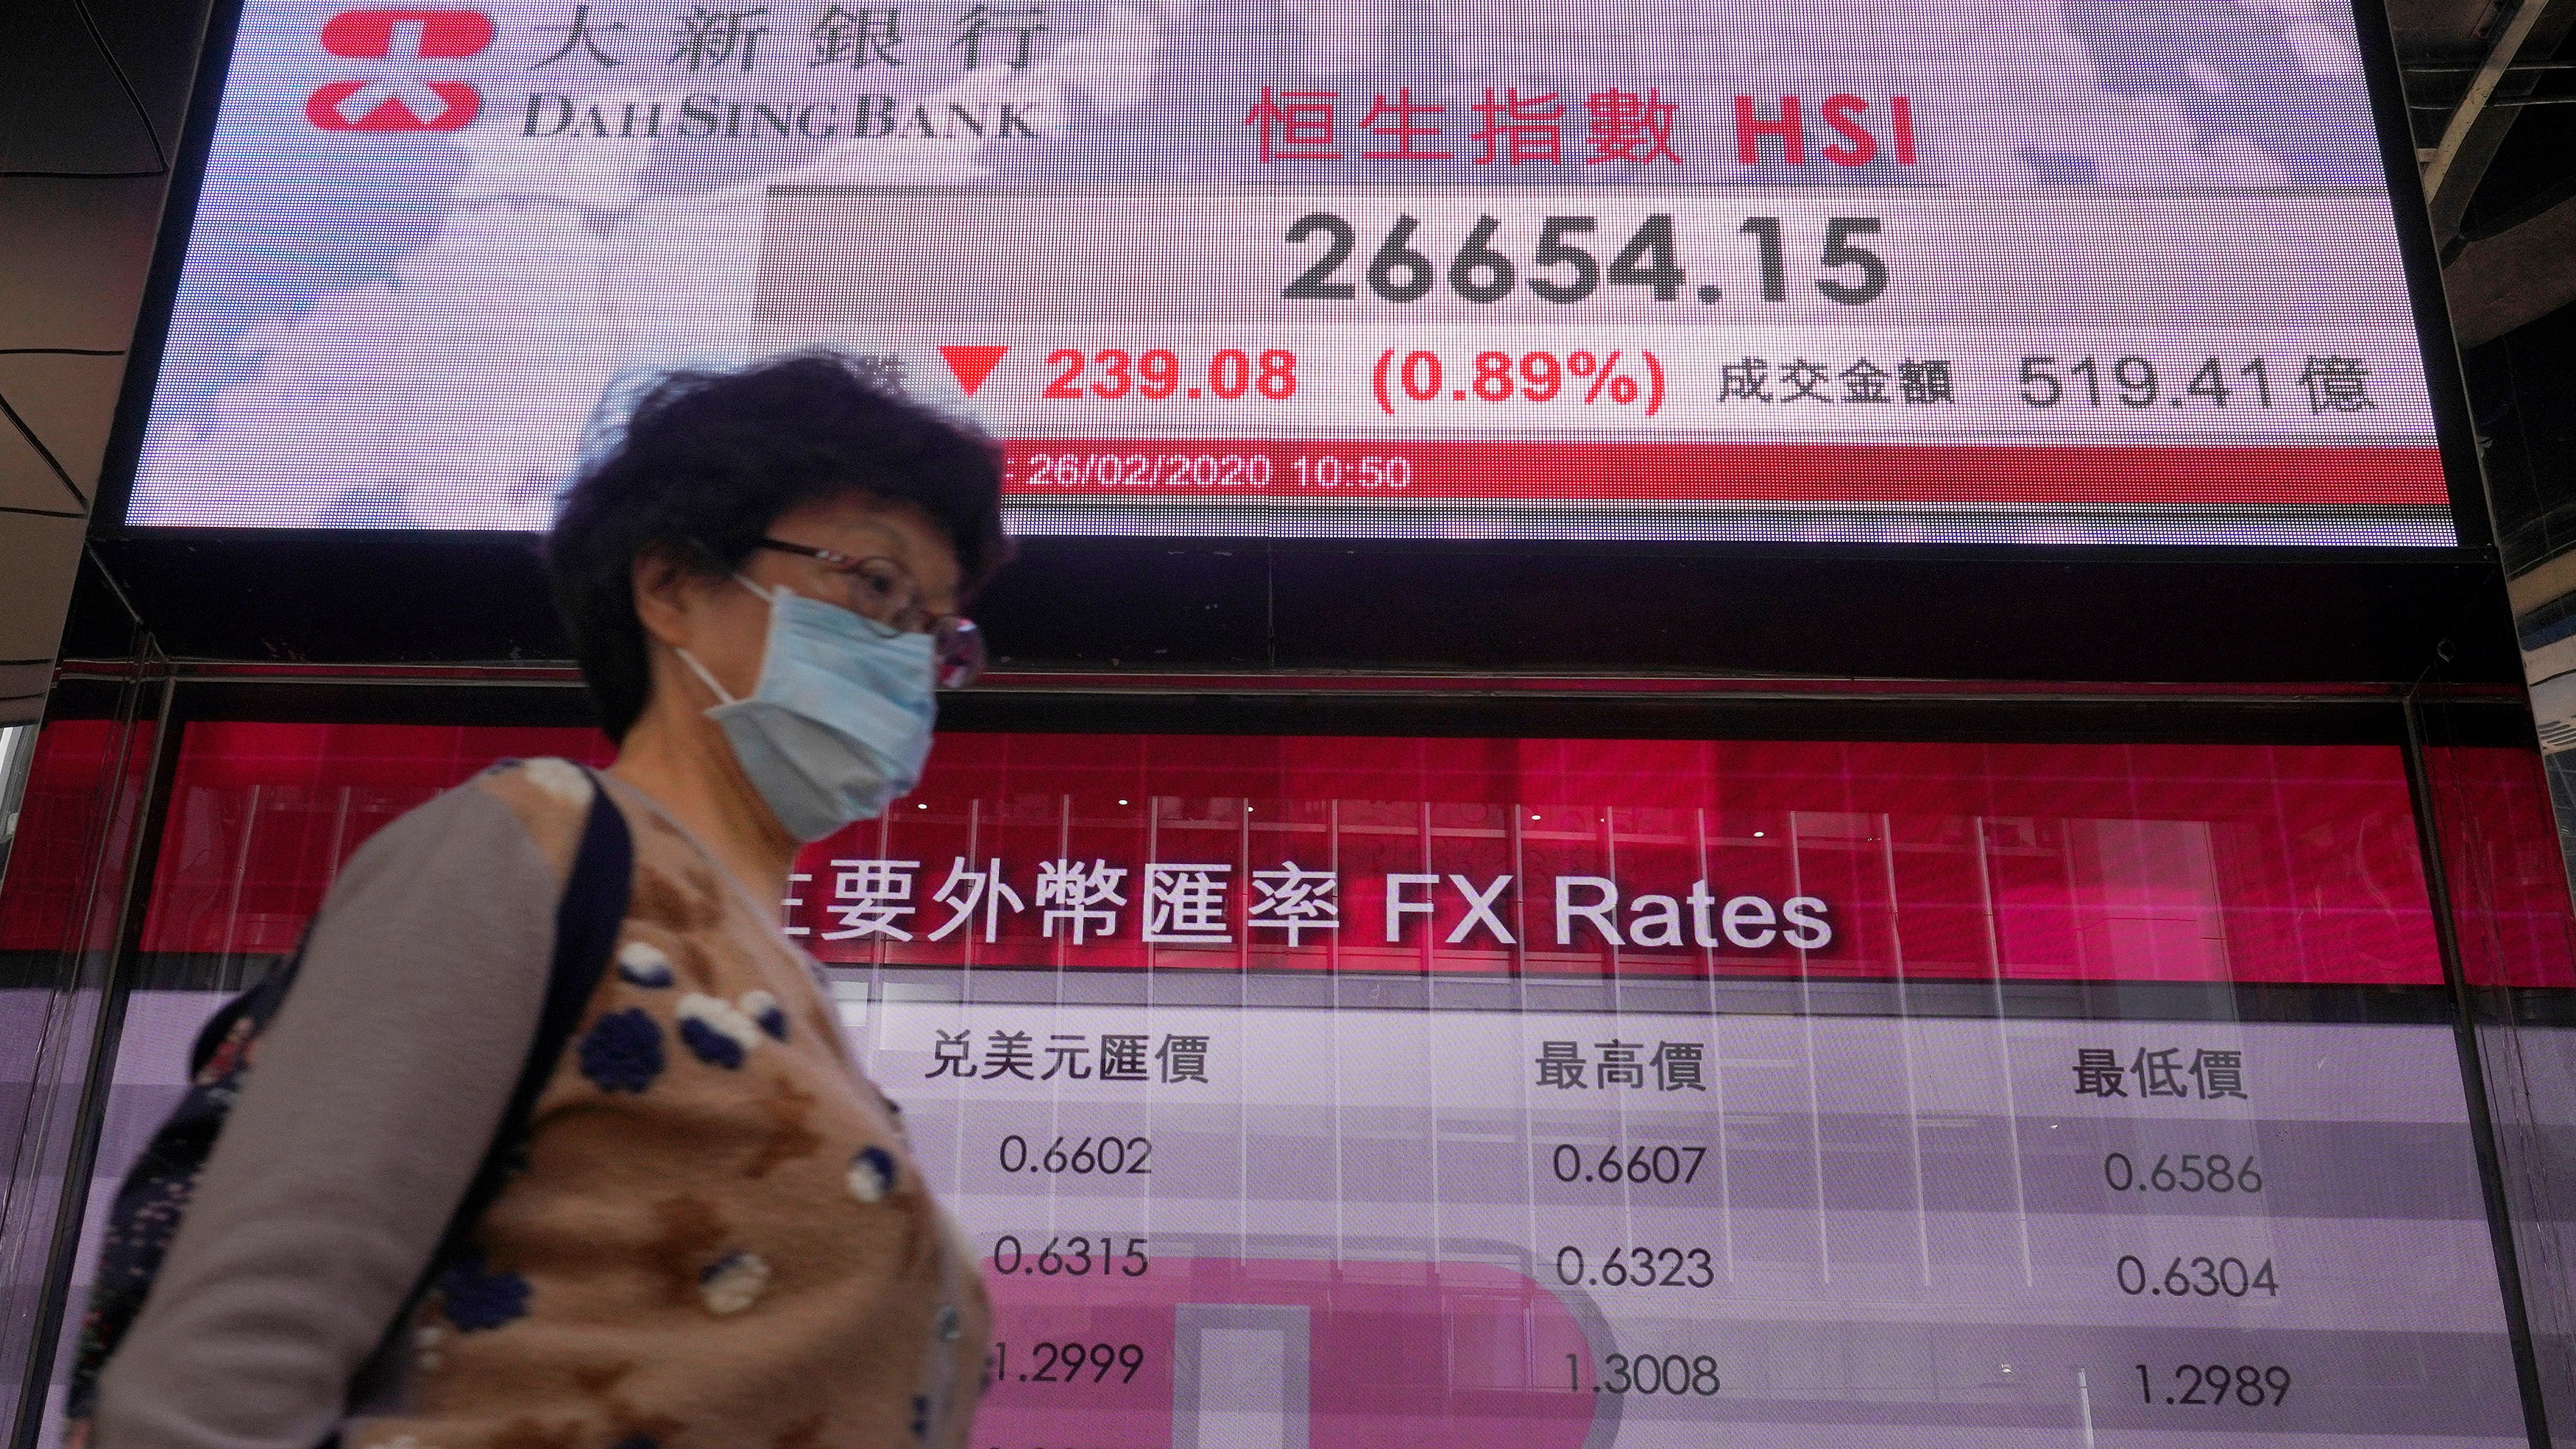 Chinese stock market during coronavirus: Should I buy now?